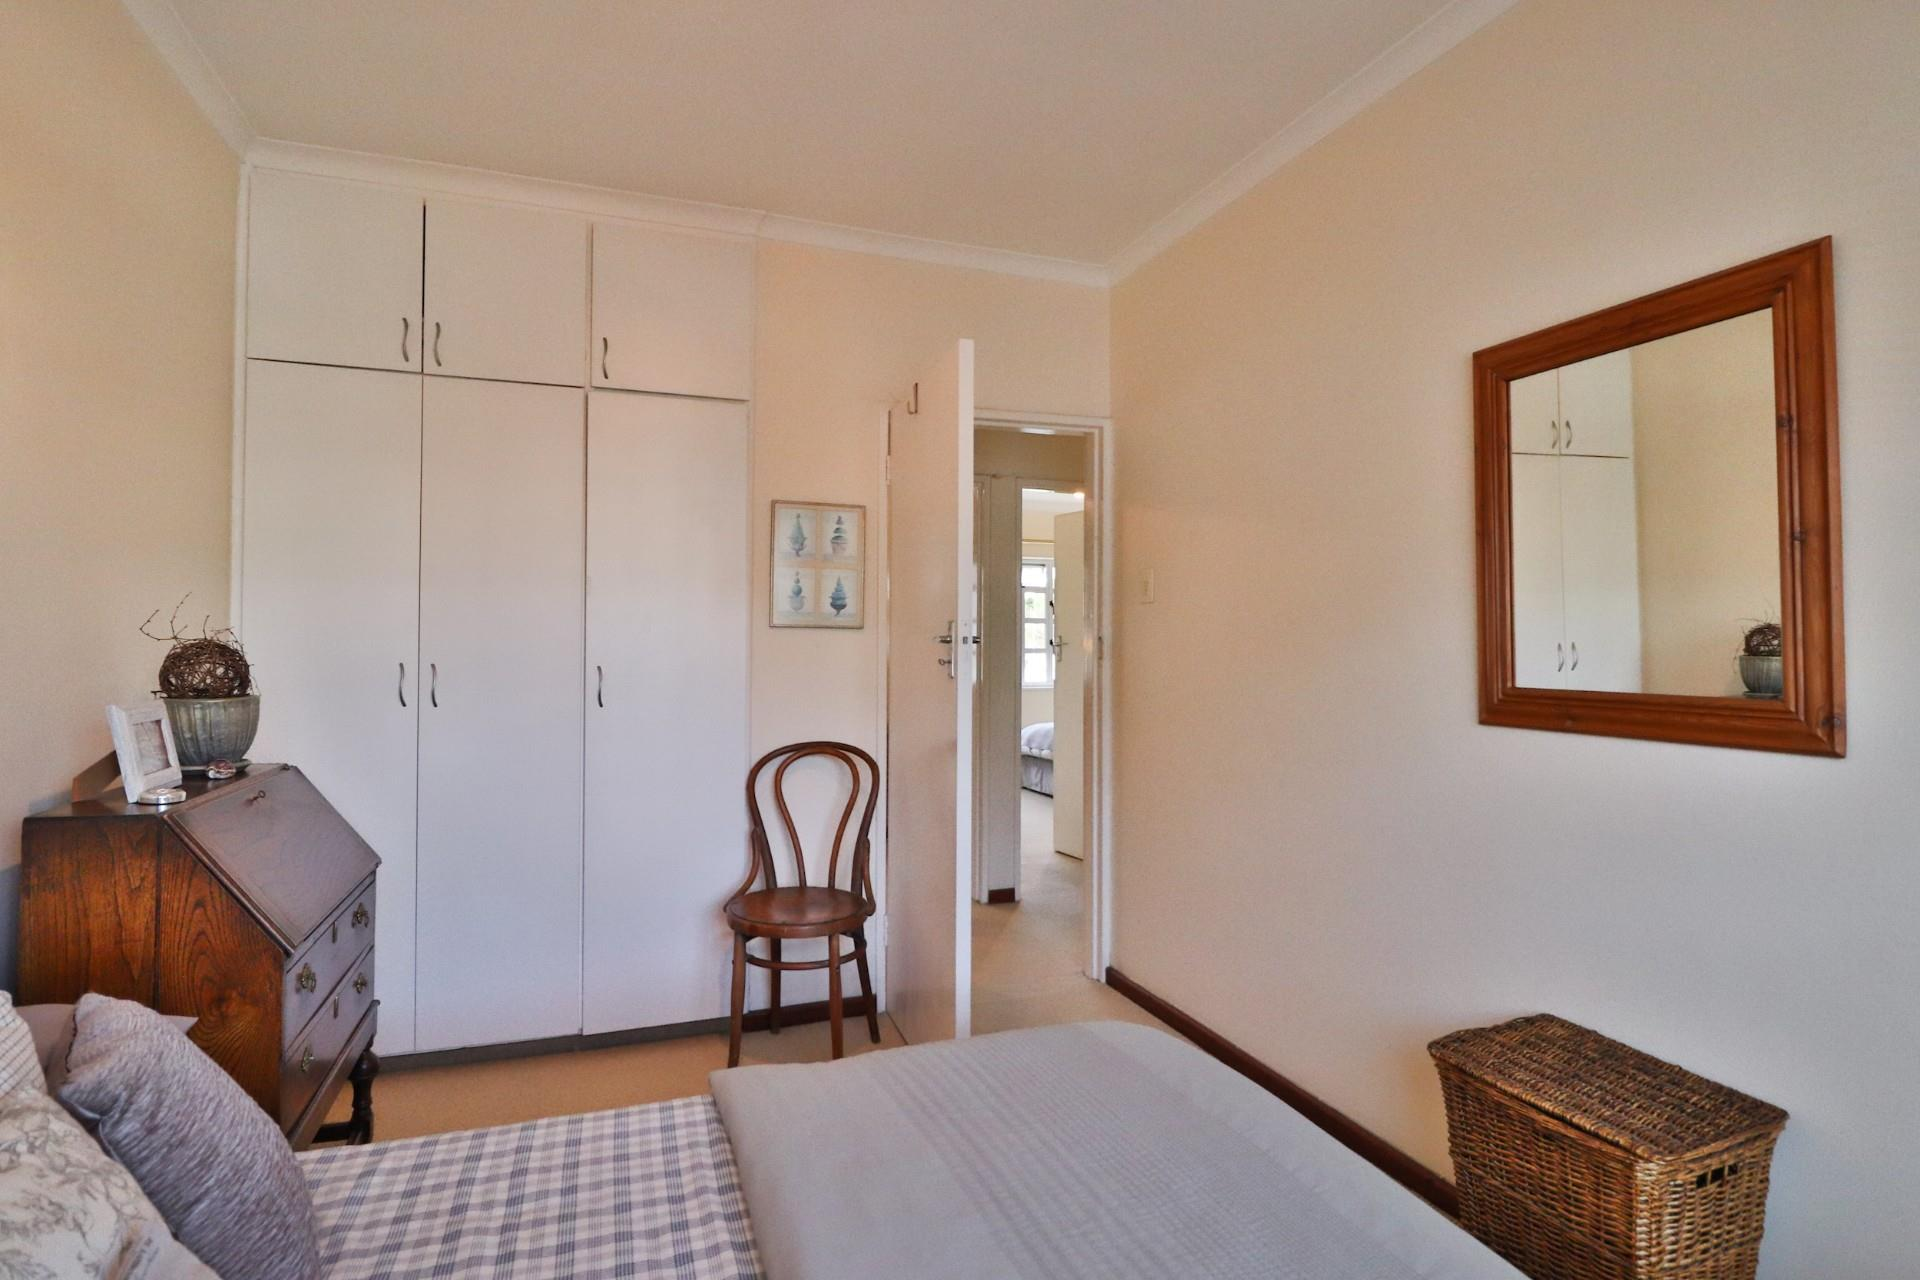 3 Bedroom Town house For Sale in Newlands